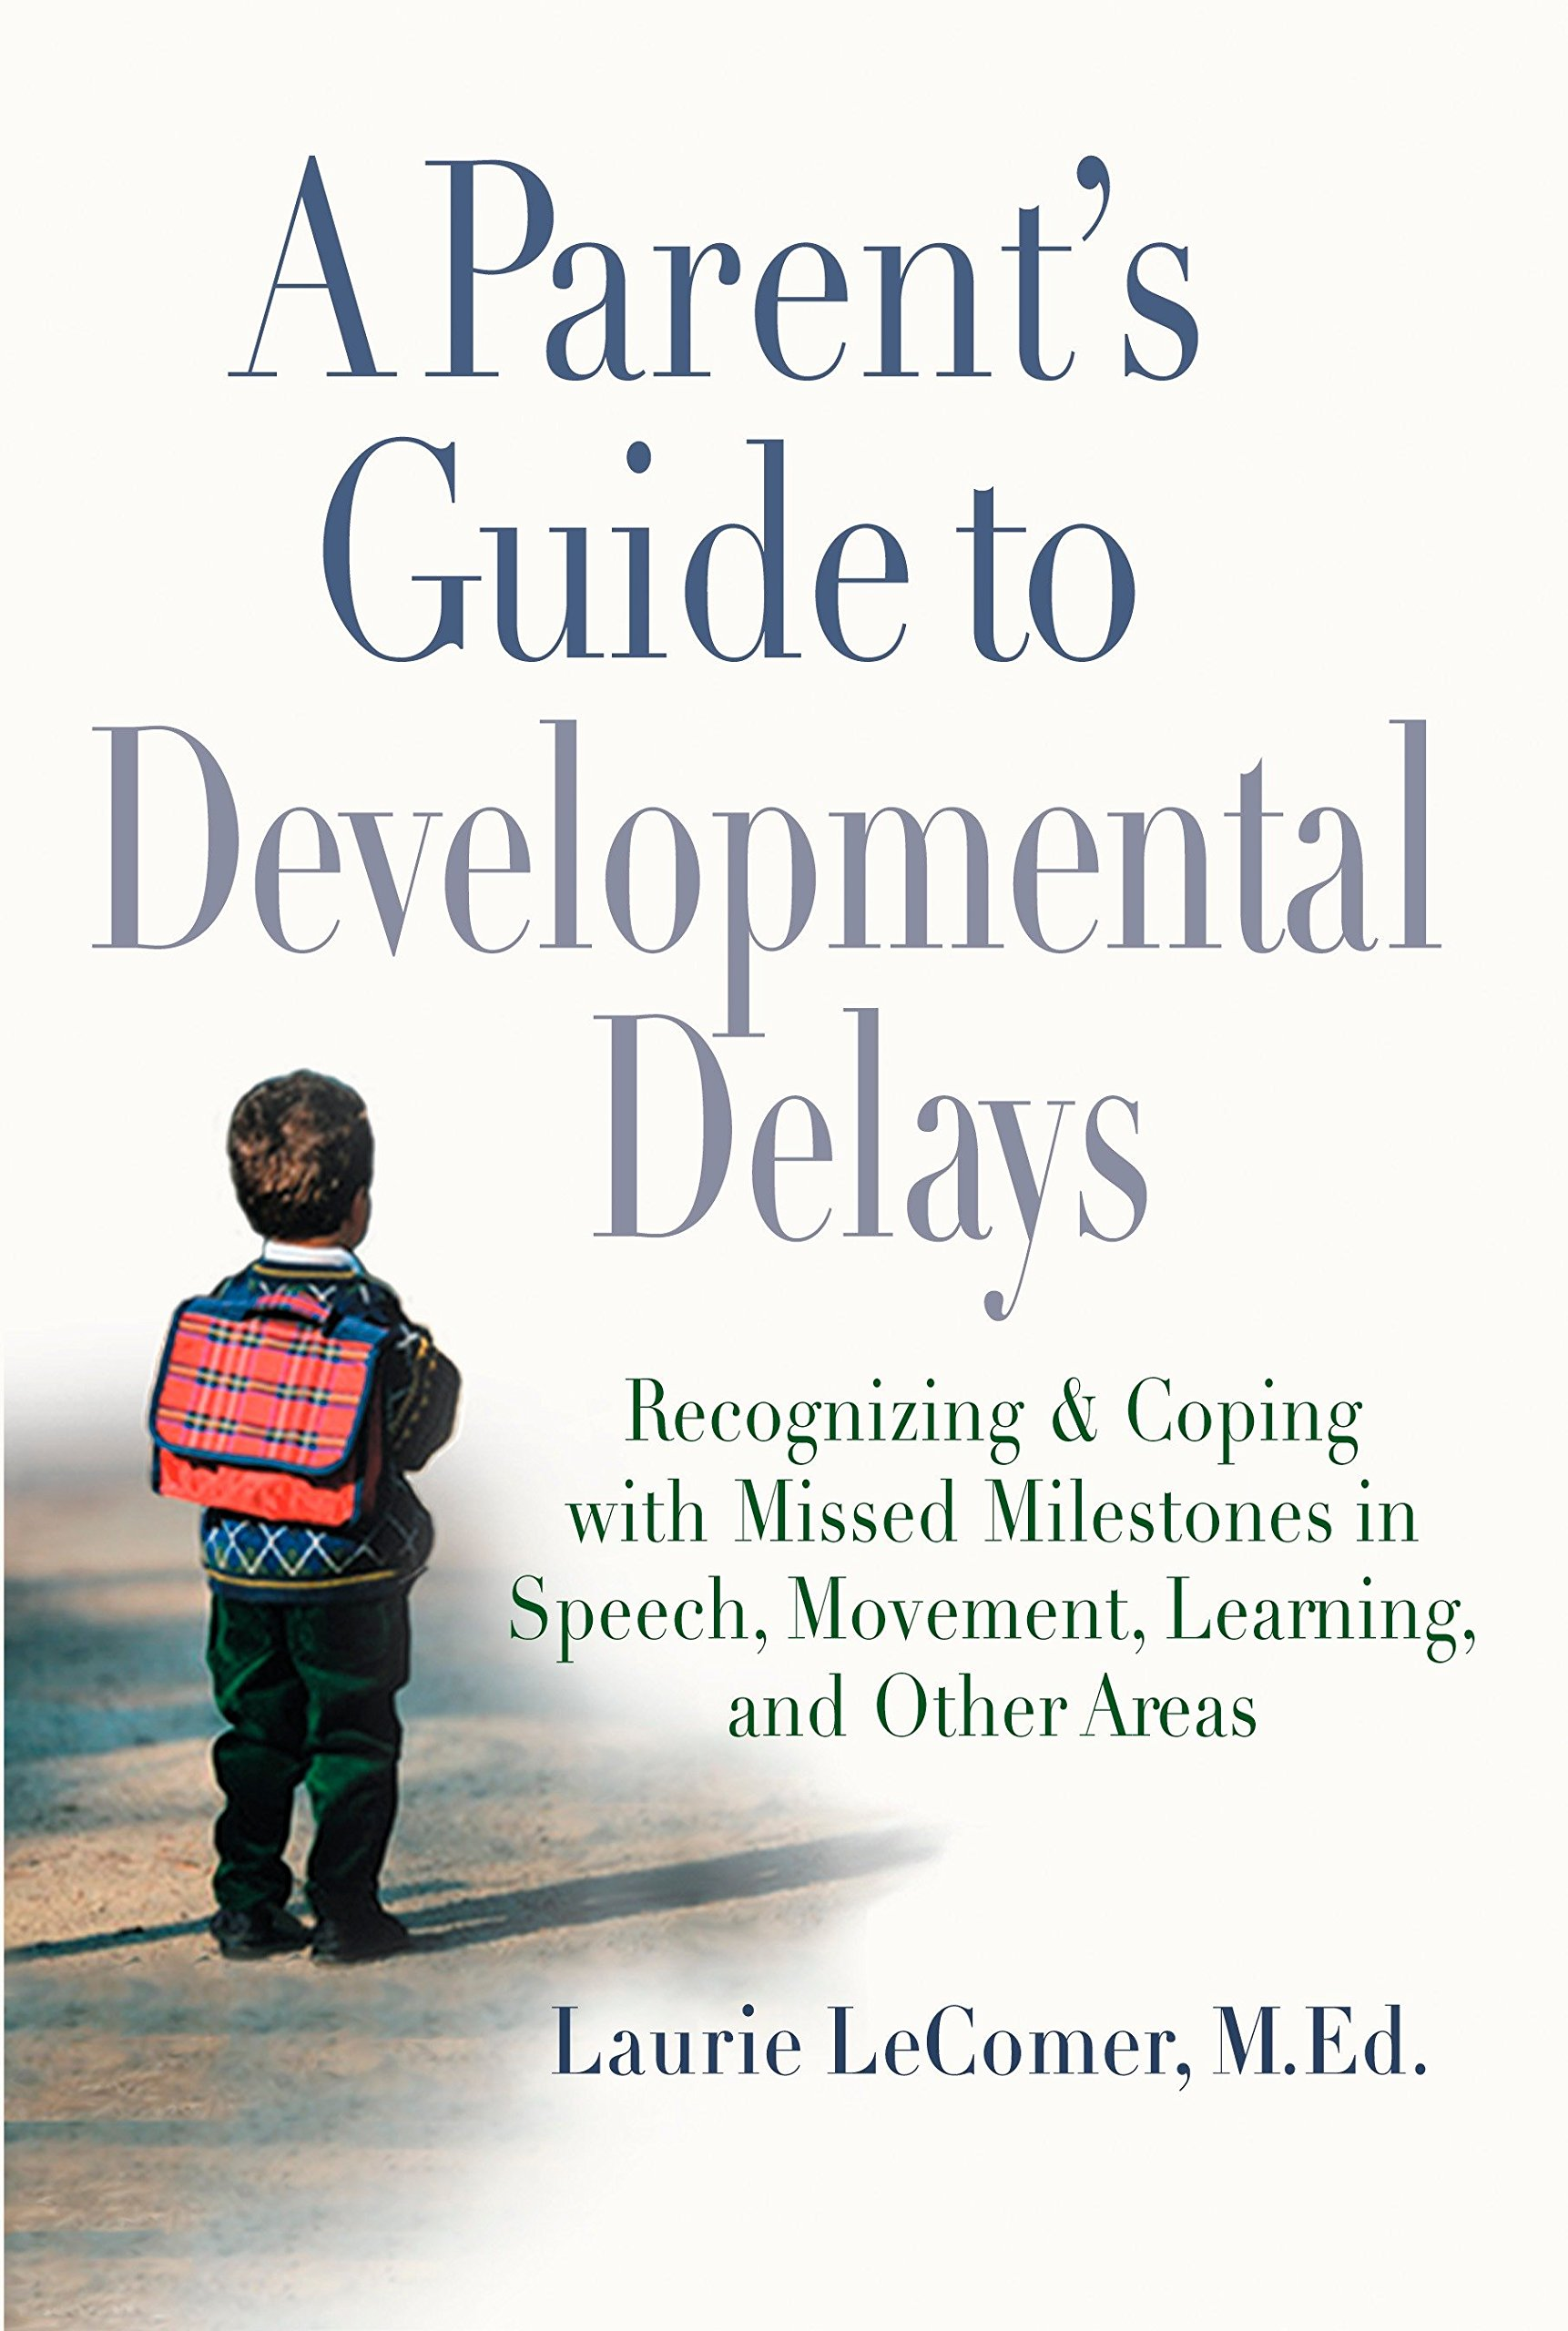 Download A Parent's Guide to Developmental Delays: Recognizing and Coping with Missed Milestones in Speech, Movement, Learning, and Other Areas pdf